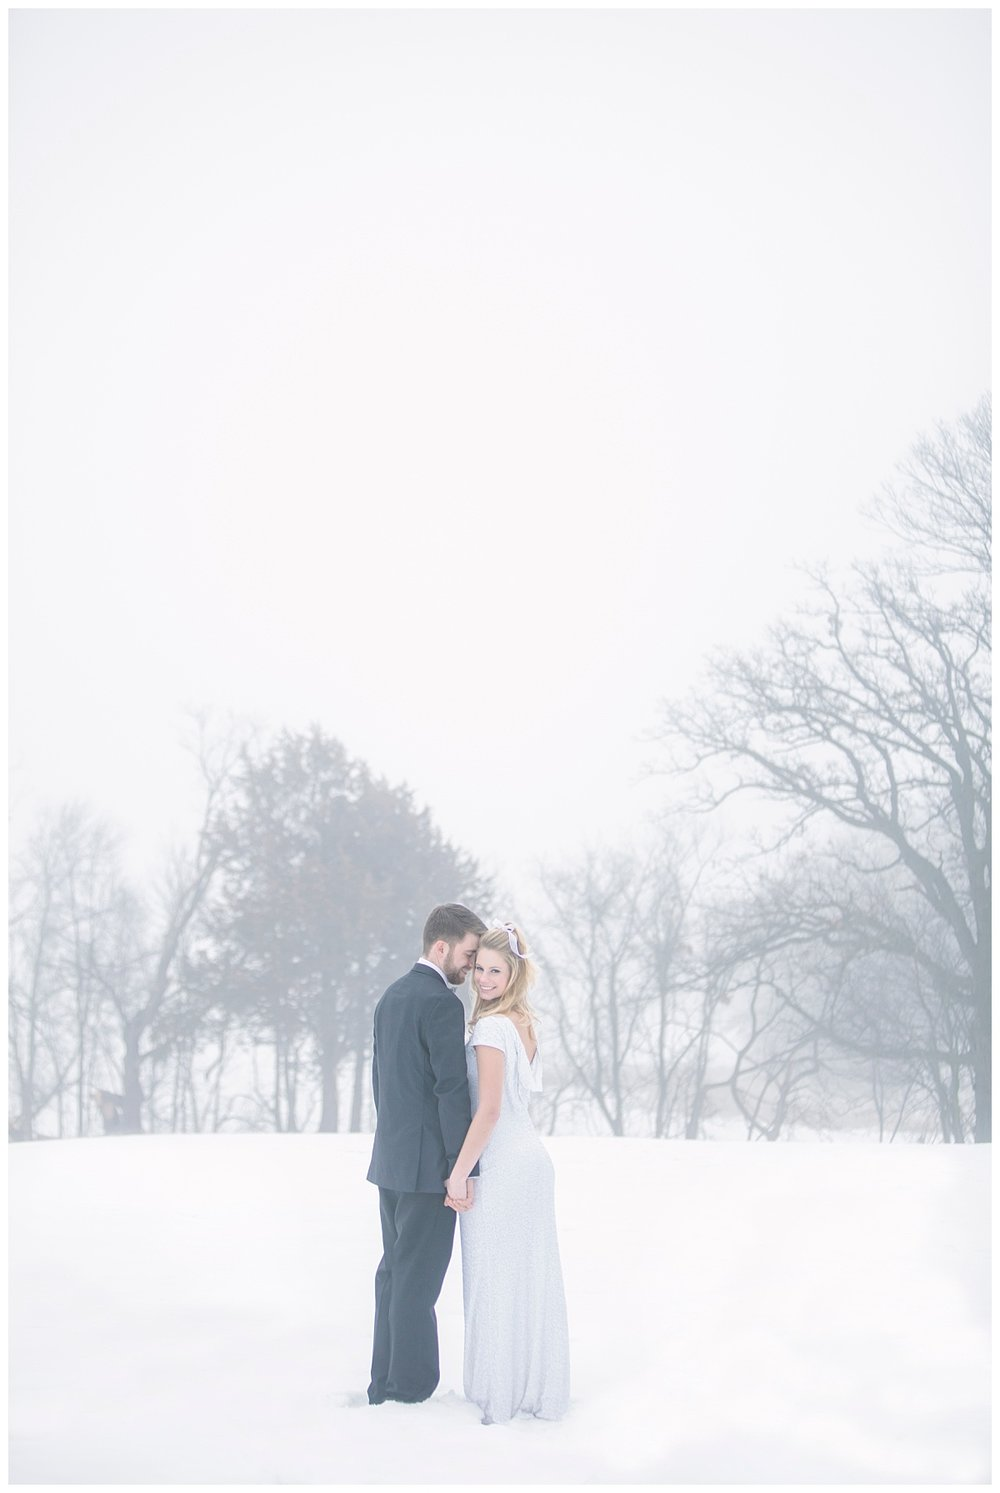 bphotography_winterwedding_siouxfallsweddingphotographer_0038.jpg